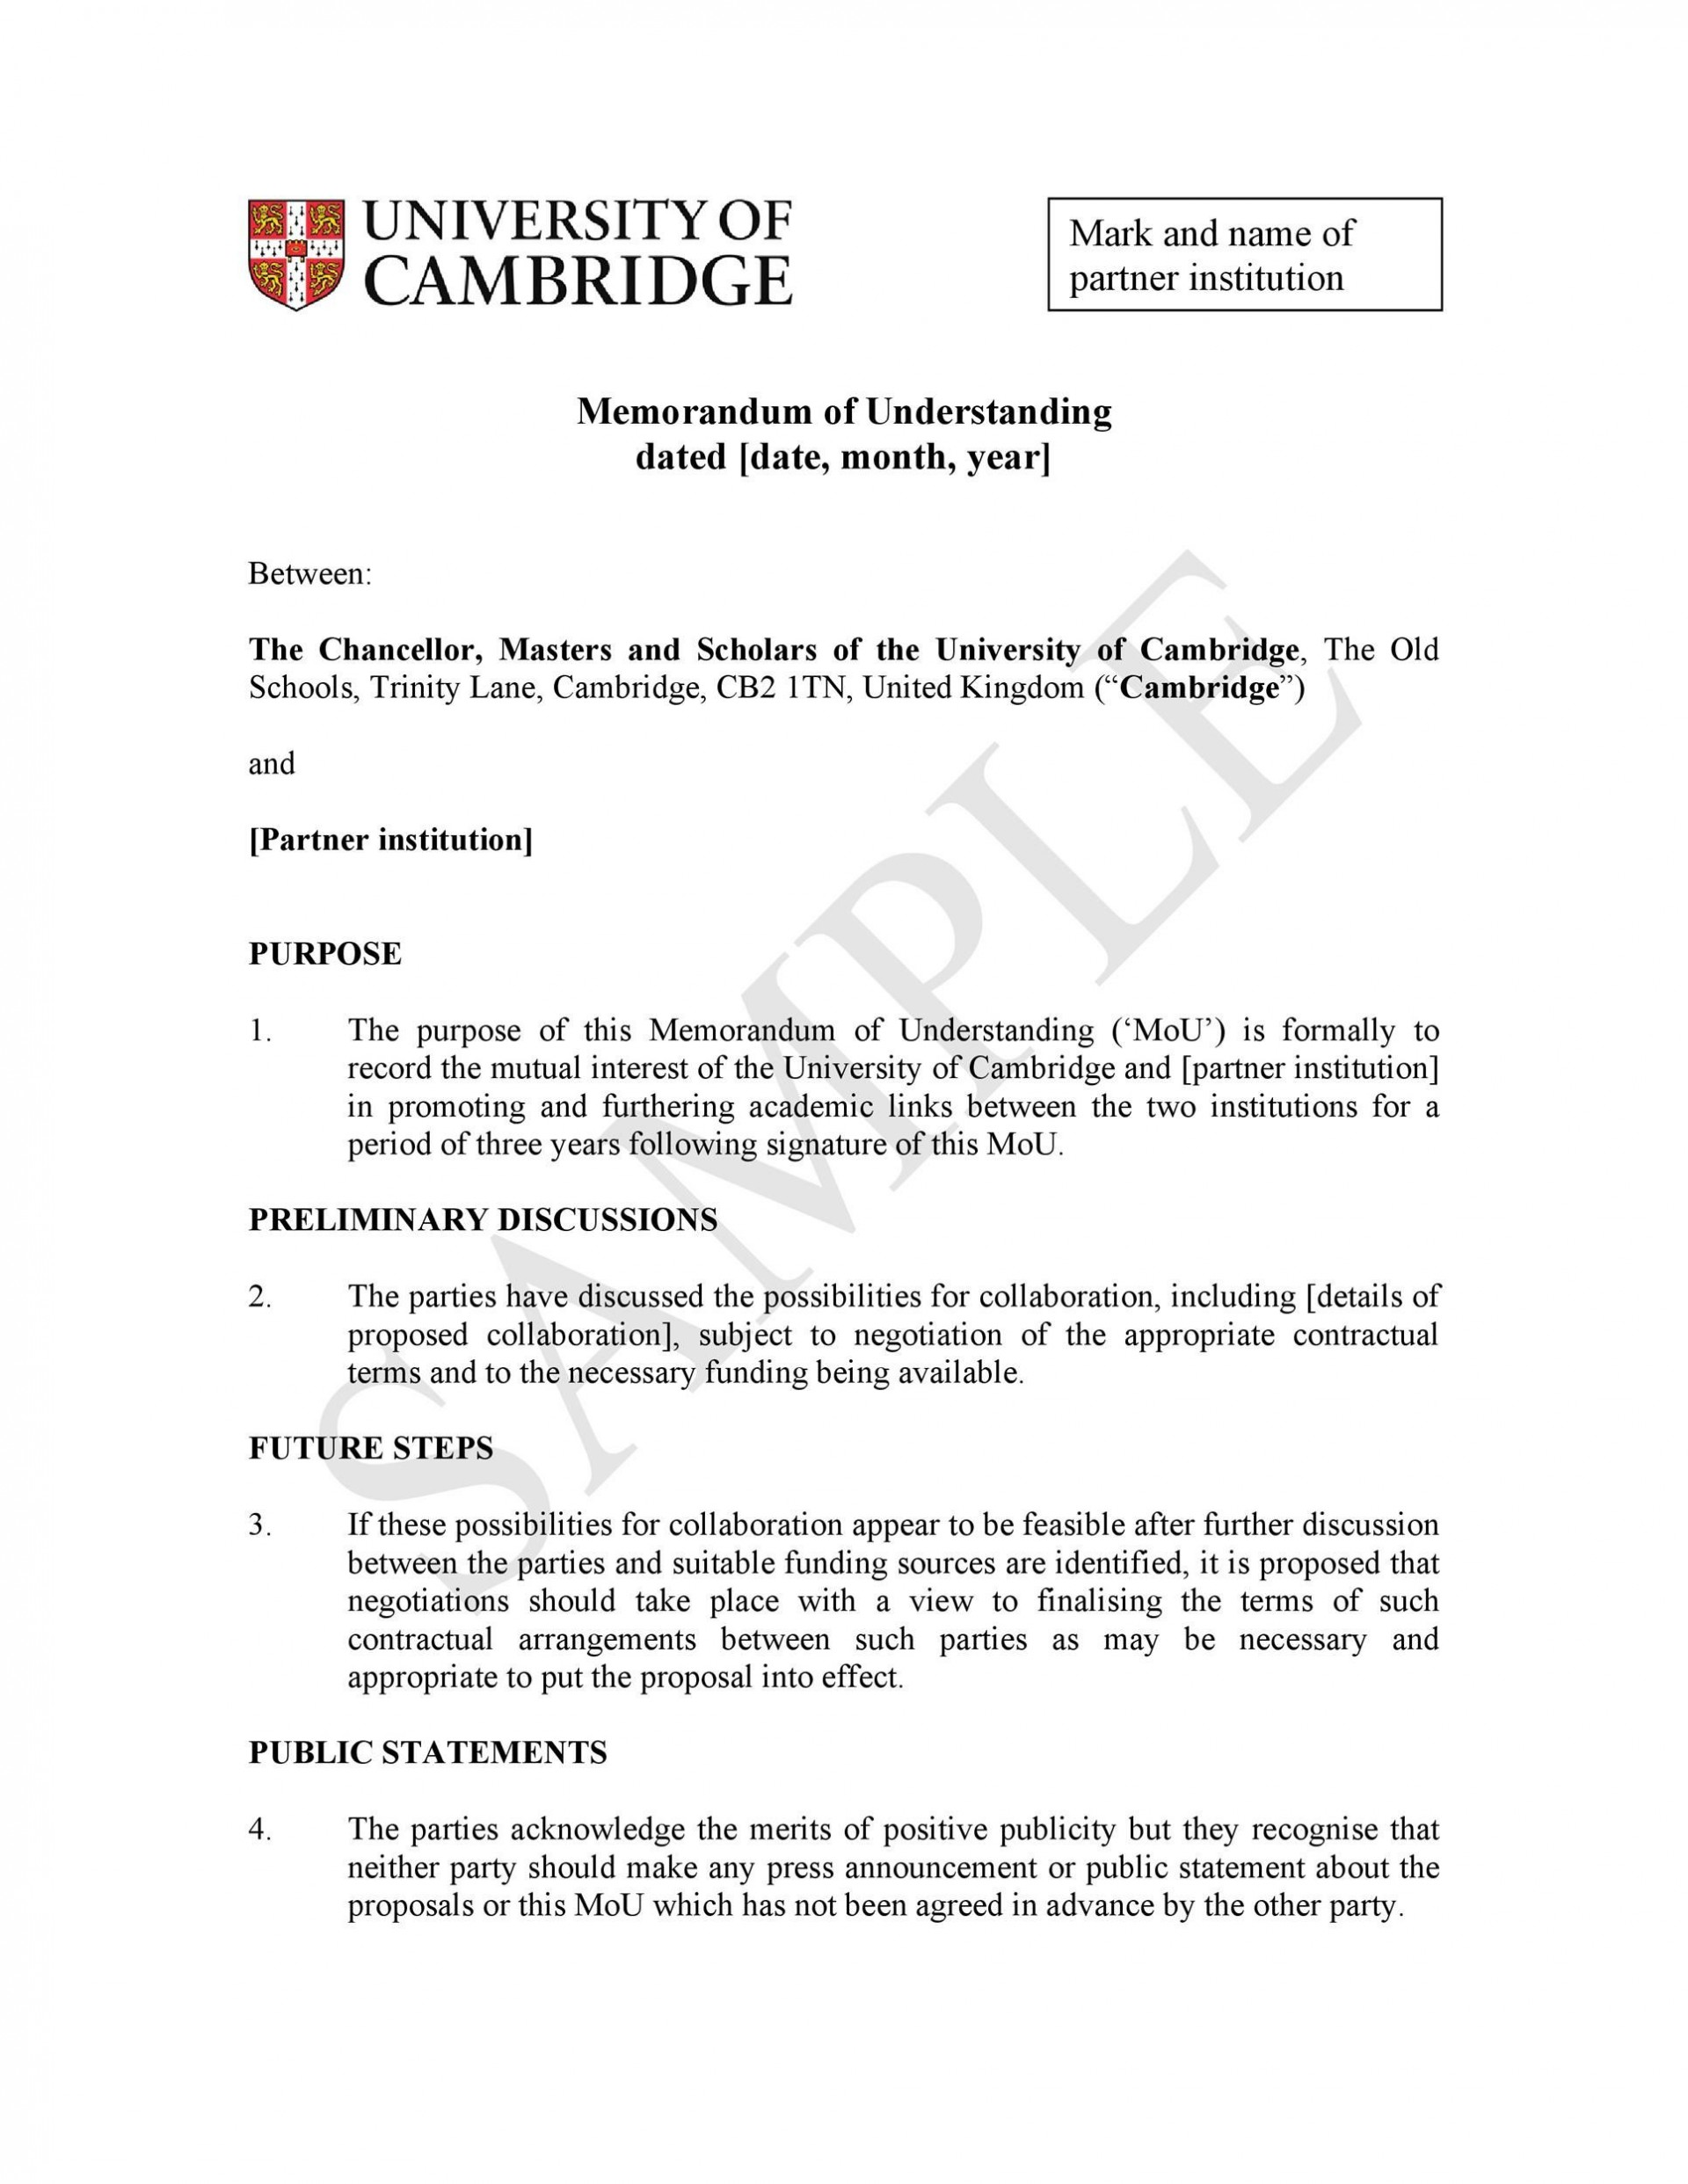 007 Stunning Letter Of Understanding Sample Example  Samples Template Word1920